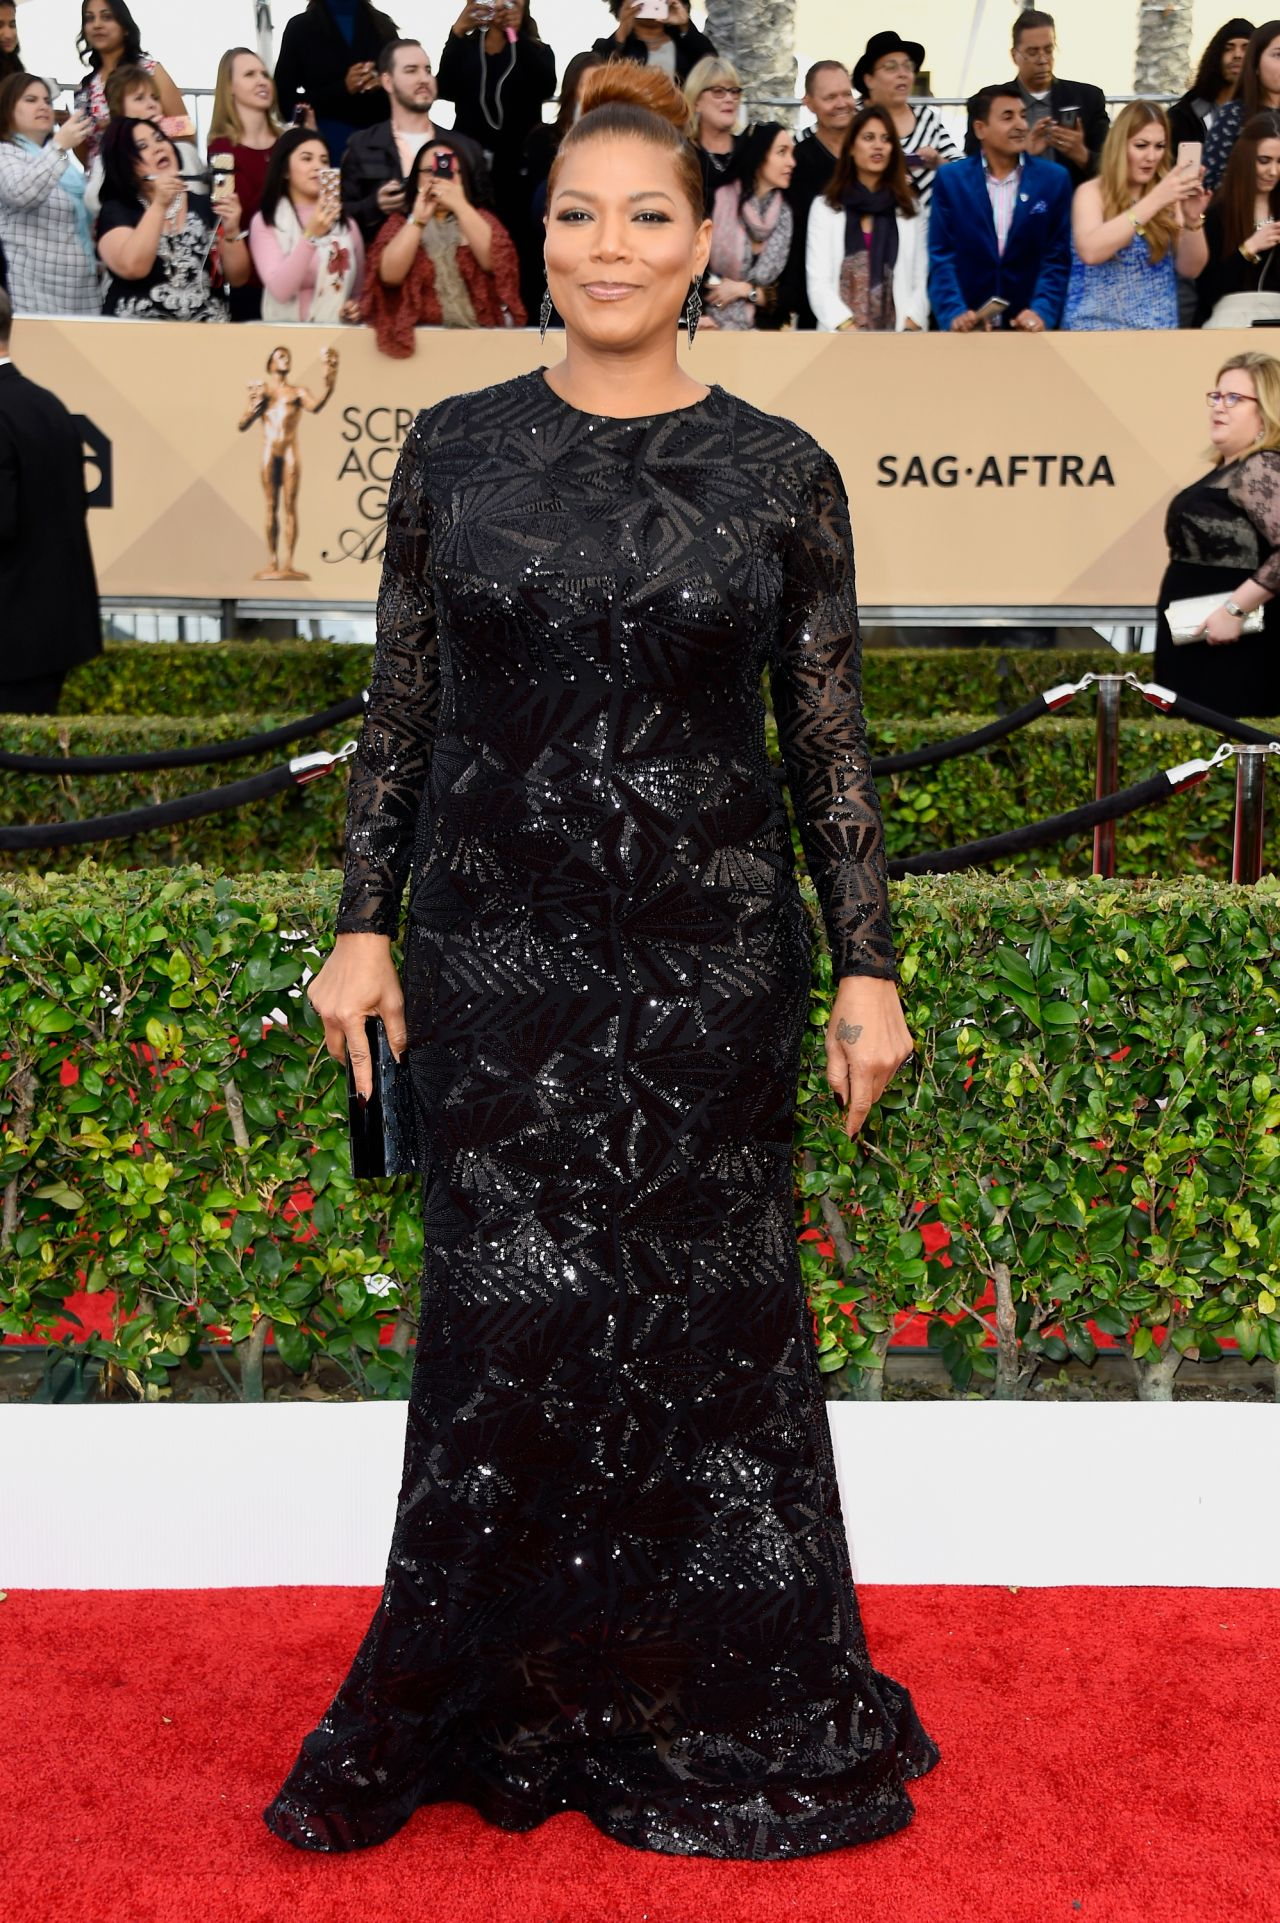 queen-latifah-sag-awards-2016-at-shrine-auditorium-in-los-angeles-1